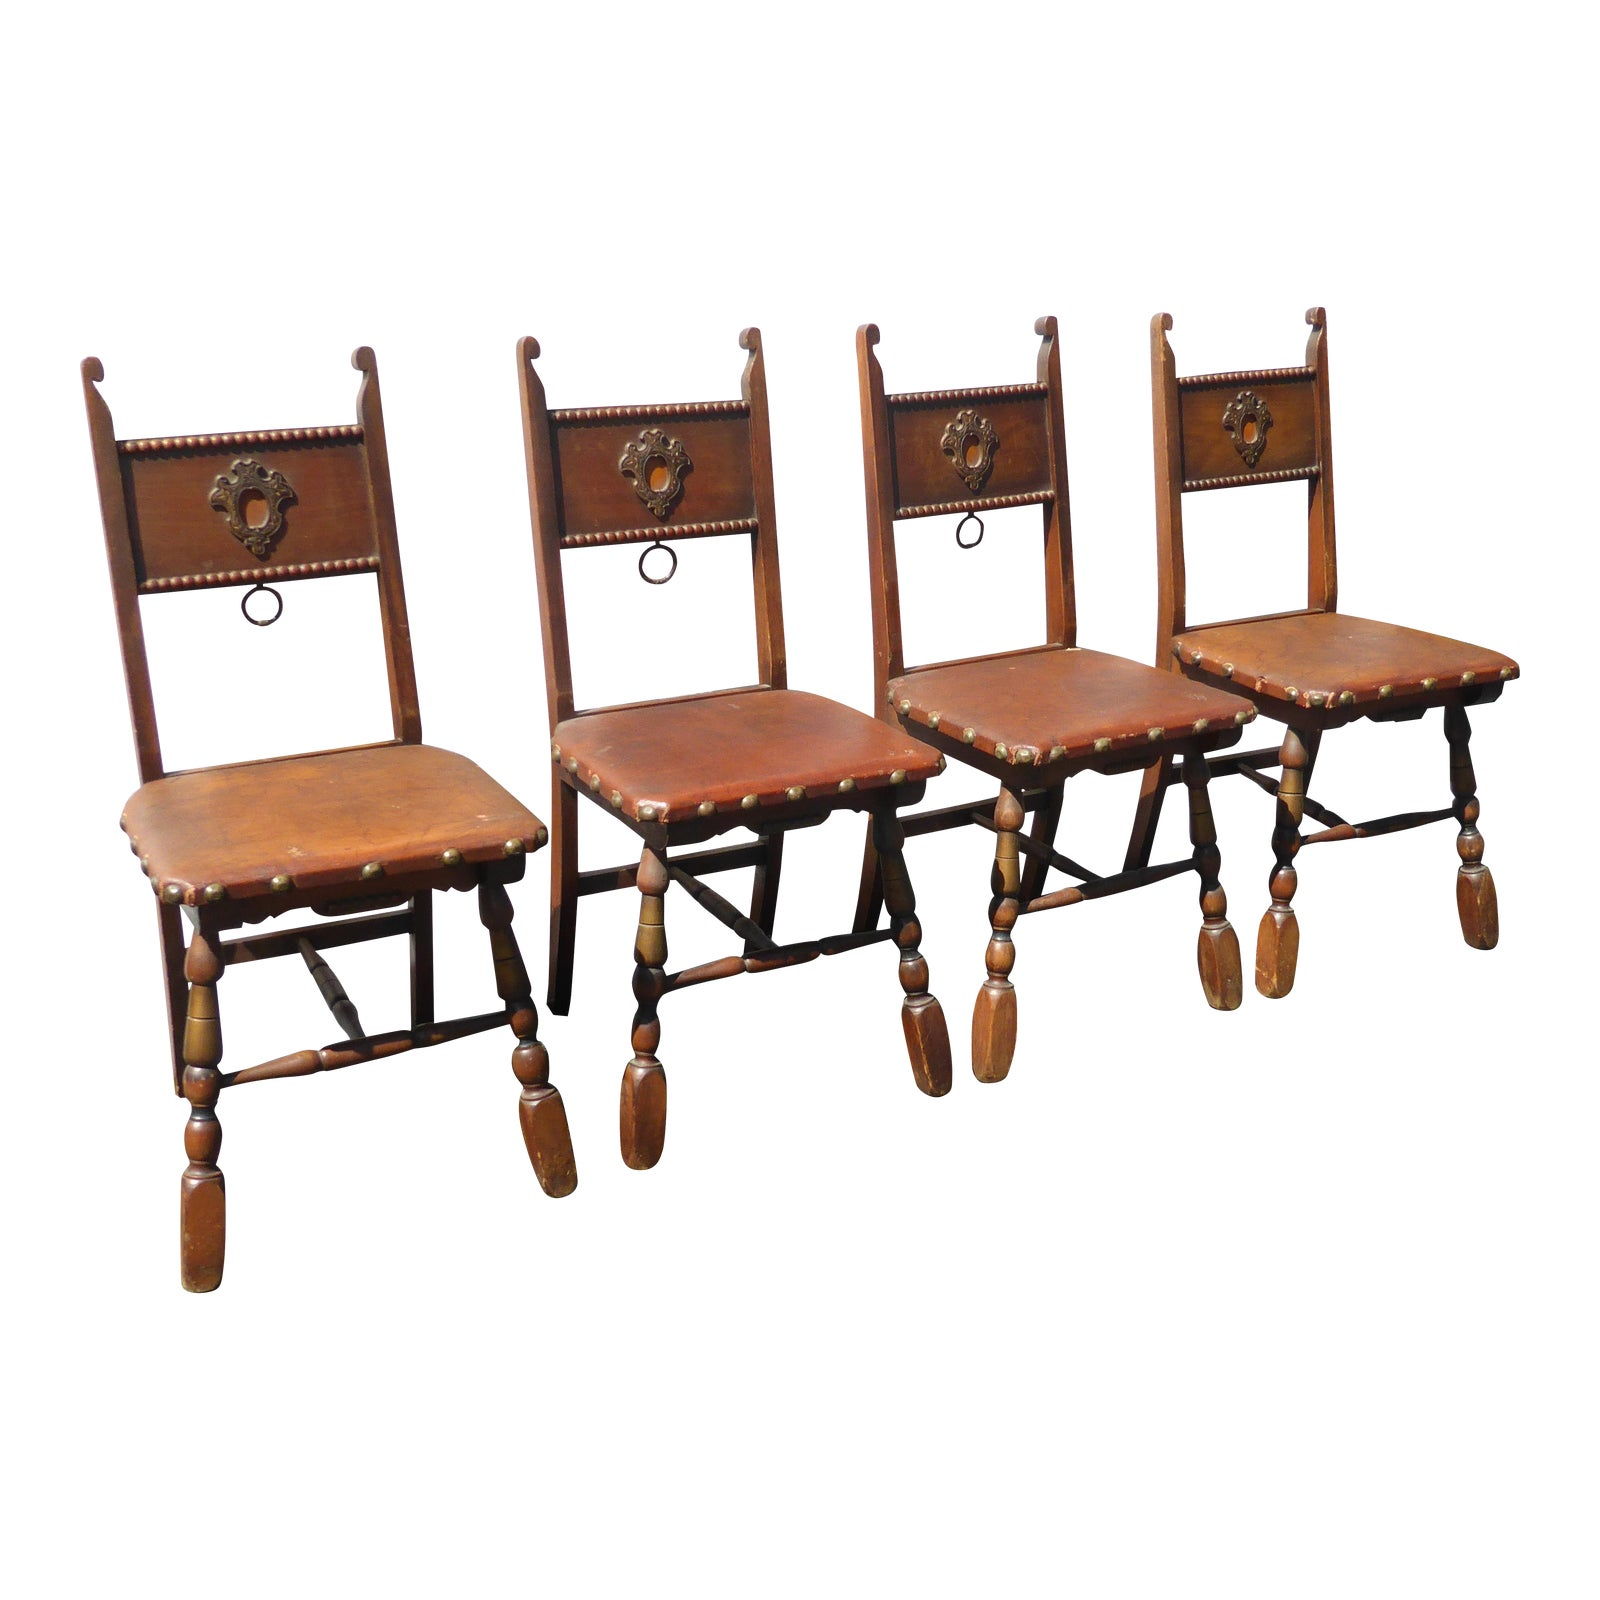 Vintage Spanish Revival Style Oak Dining Chairs W Decorative Clavos